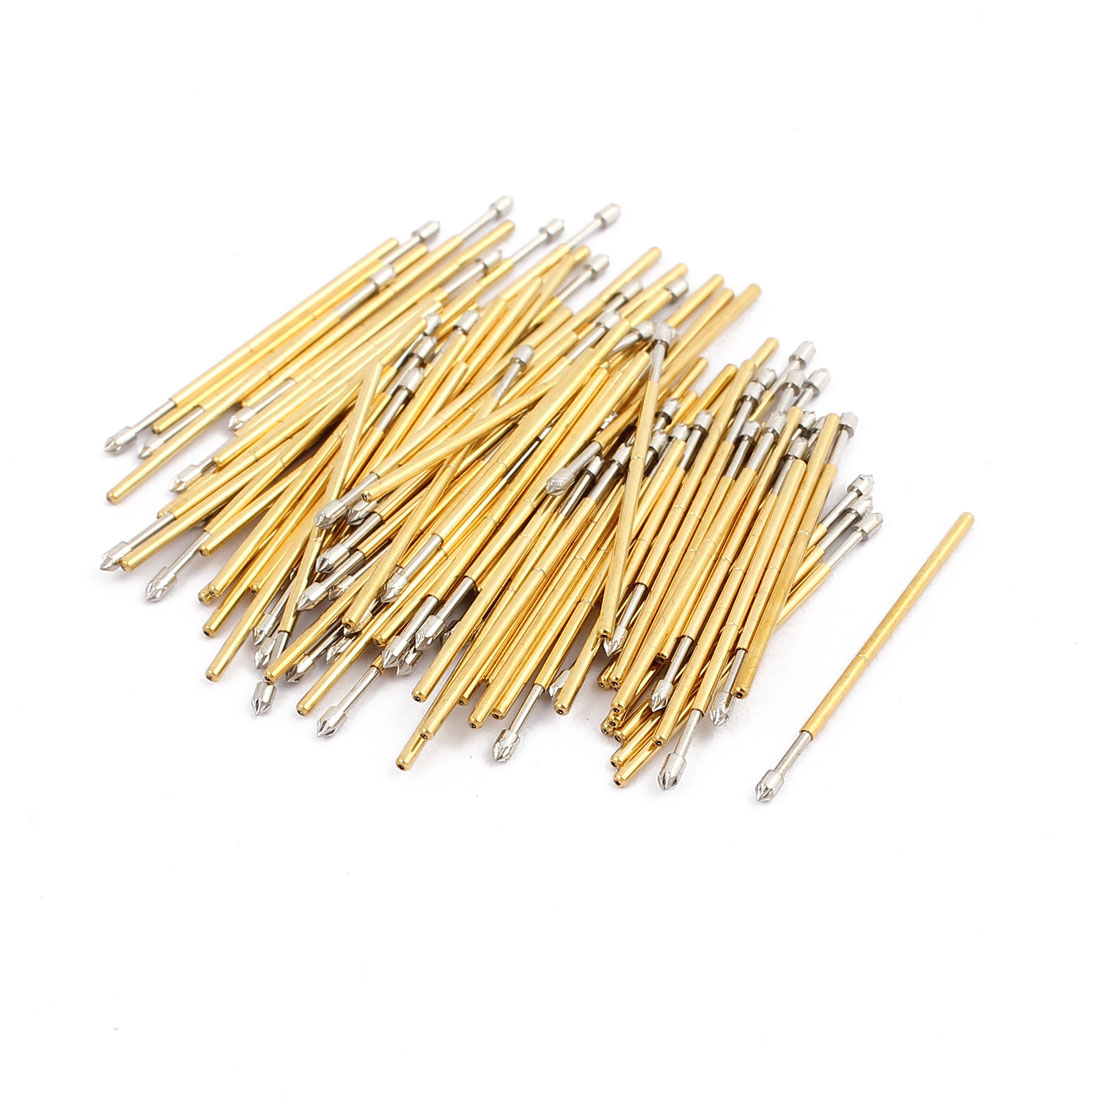 100pcs PL75-LM2 1.0mm Dia 27.8mm Length Metal Spring Pressure Test Probe Needle